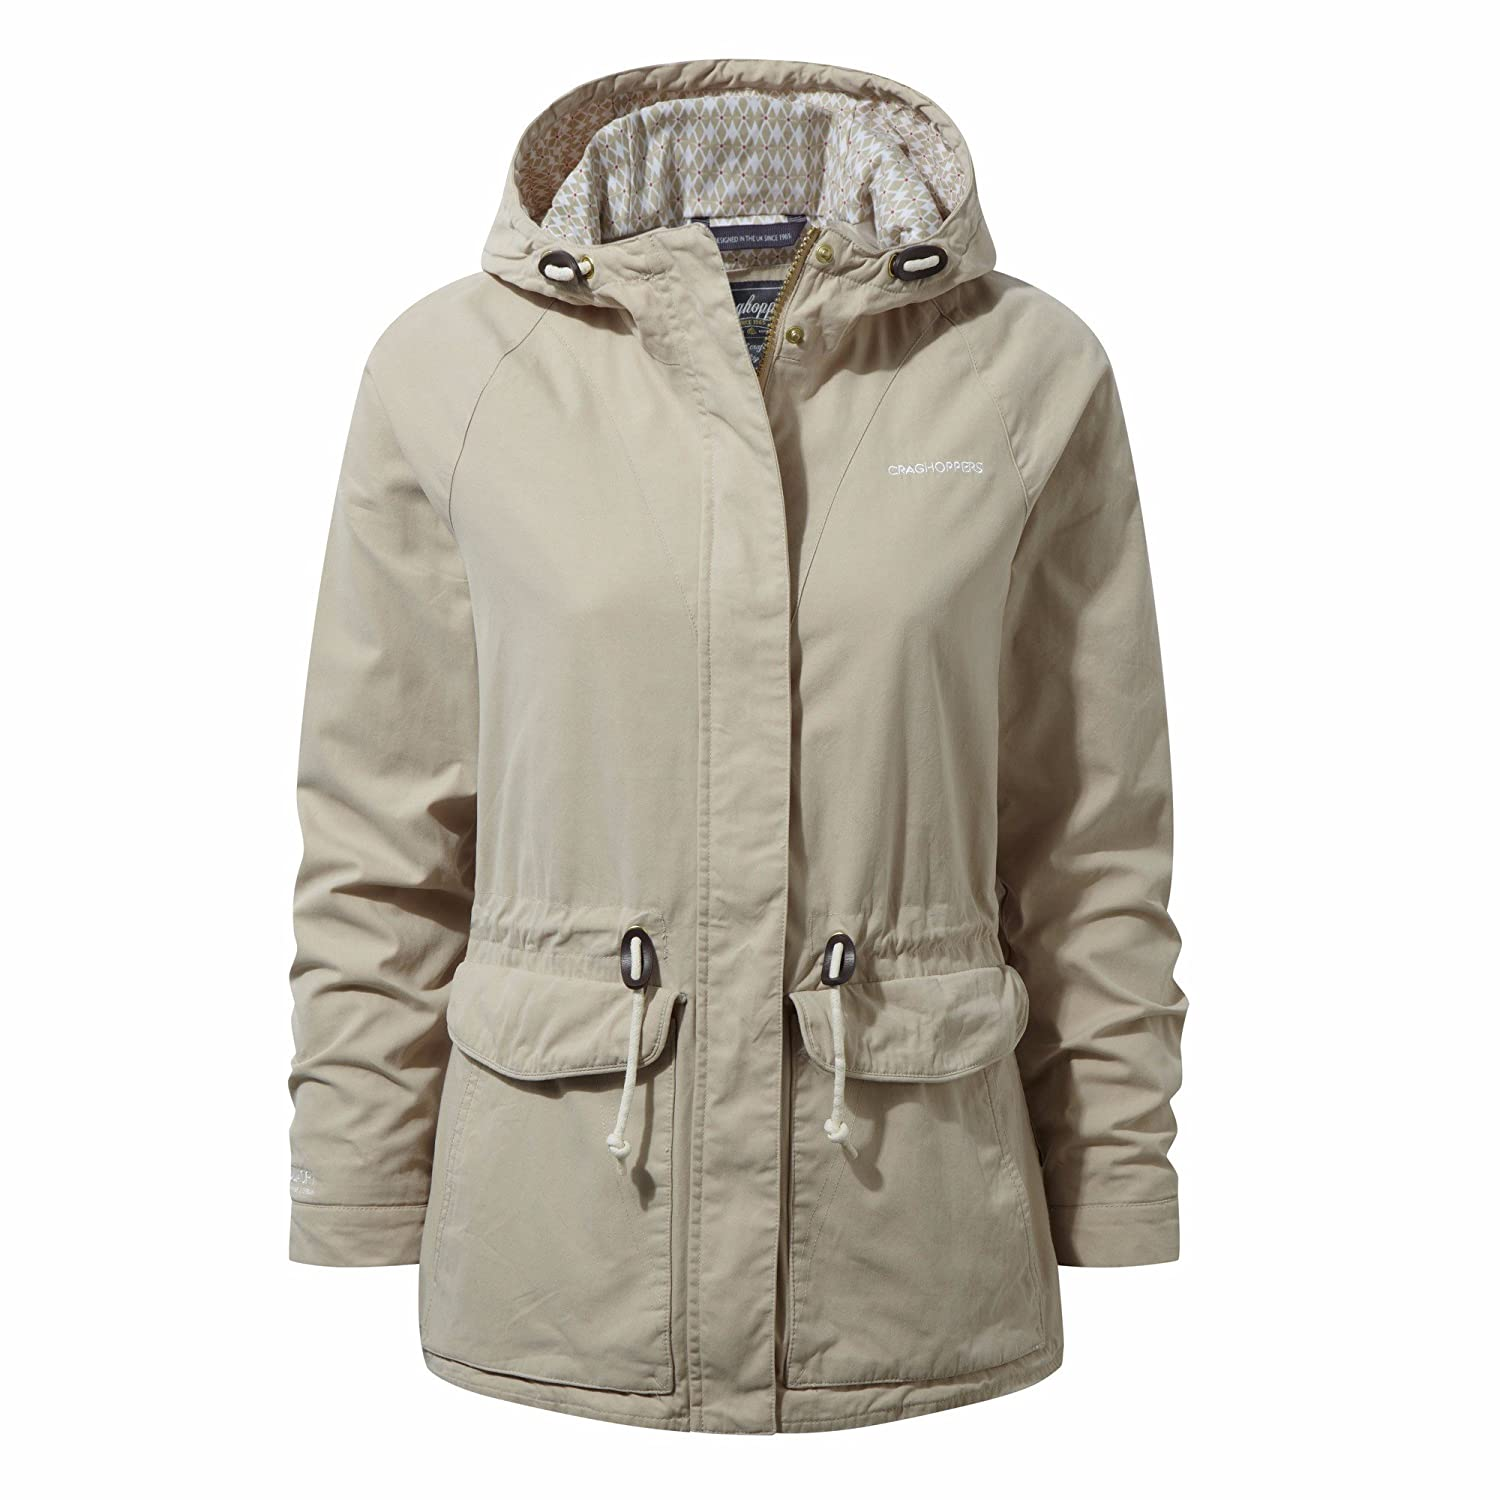 Craghoppers - Chaqueta impermeable para mujer